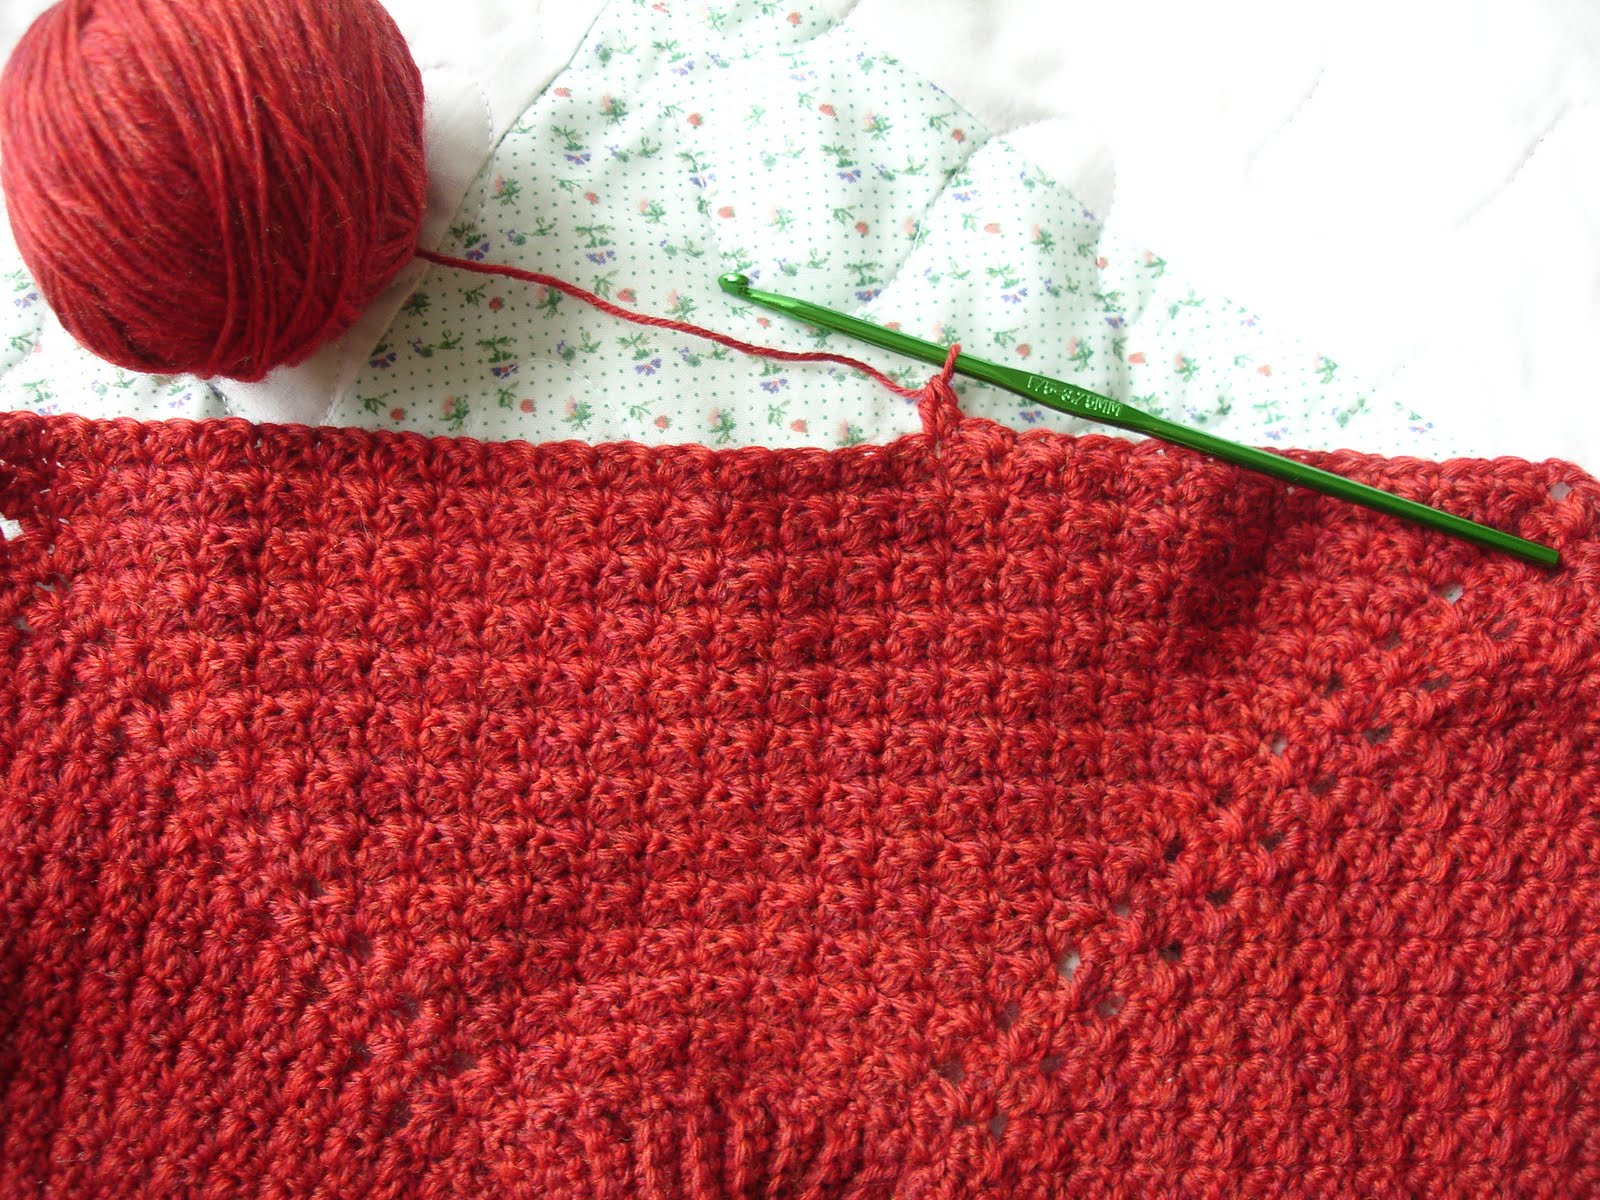 Crocheting With Hands : Hands Crocheting Muscle memory makes crocheting